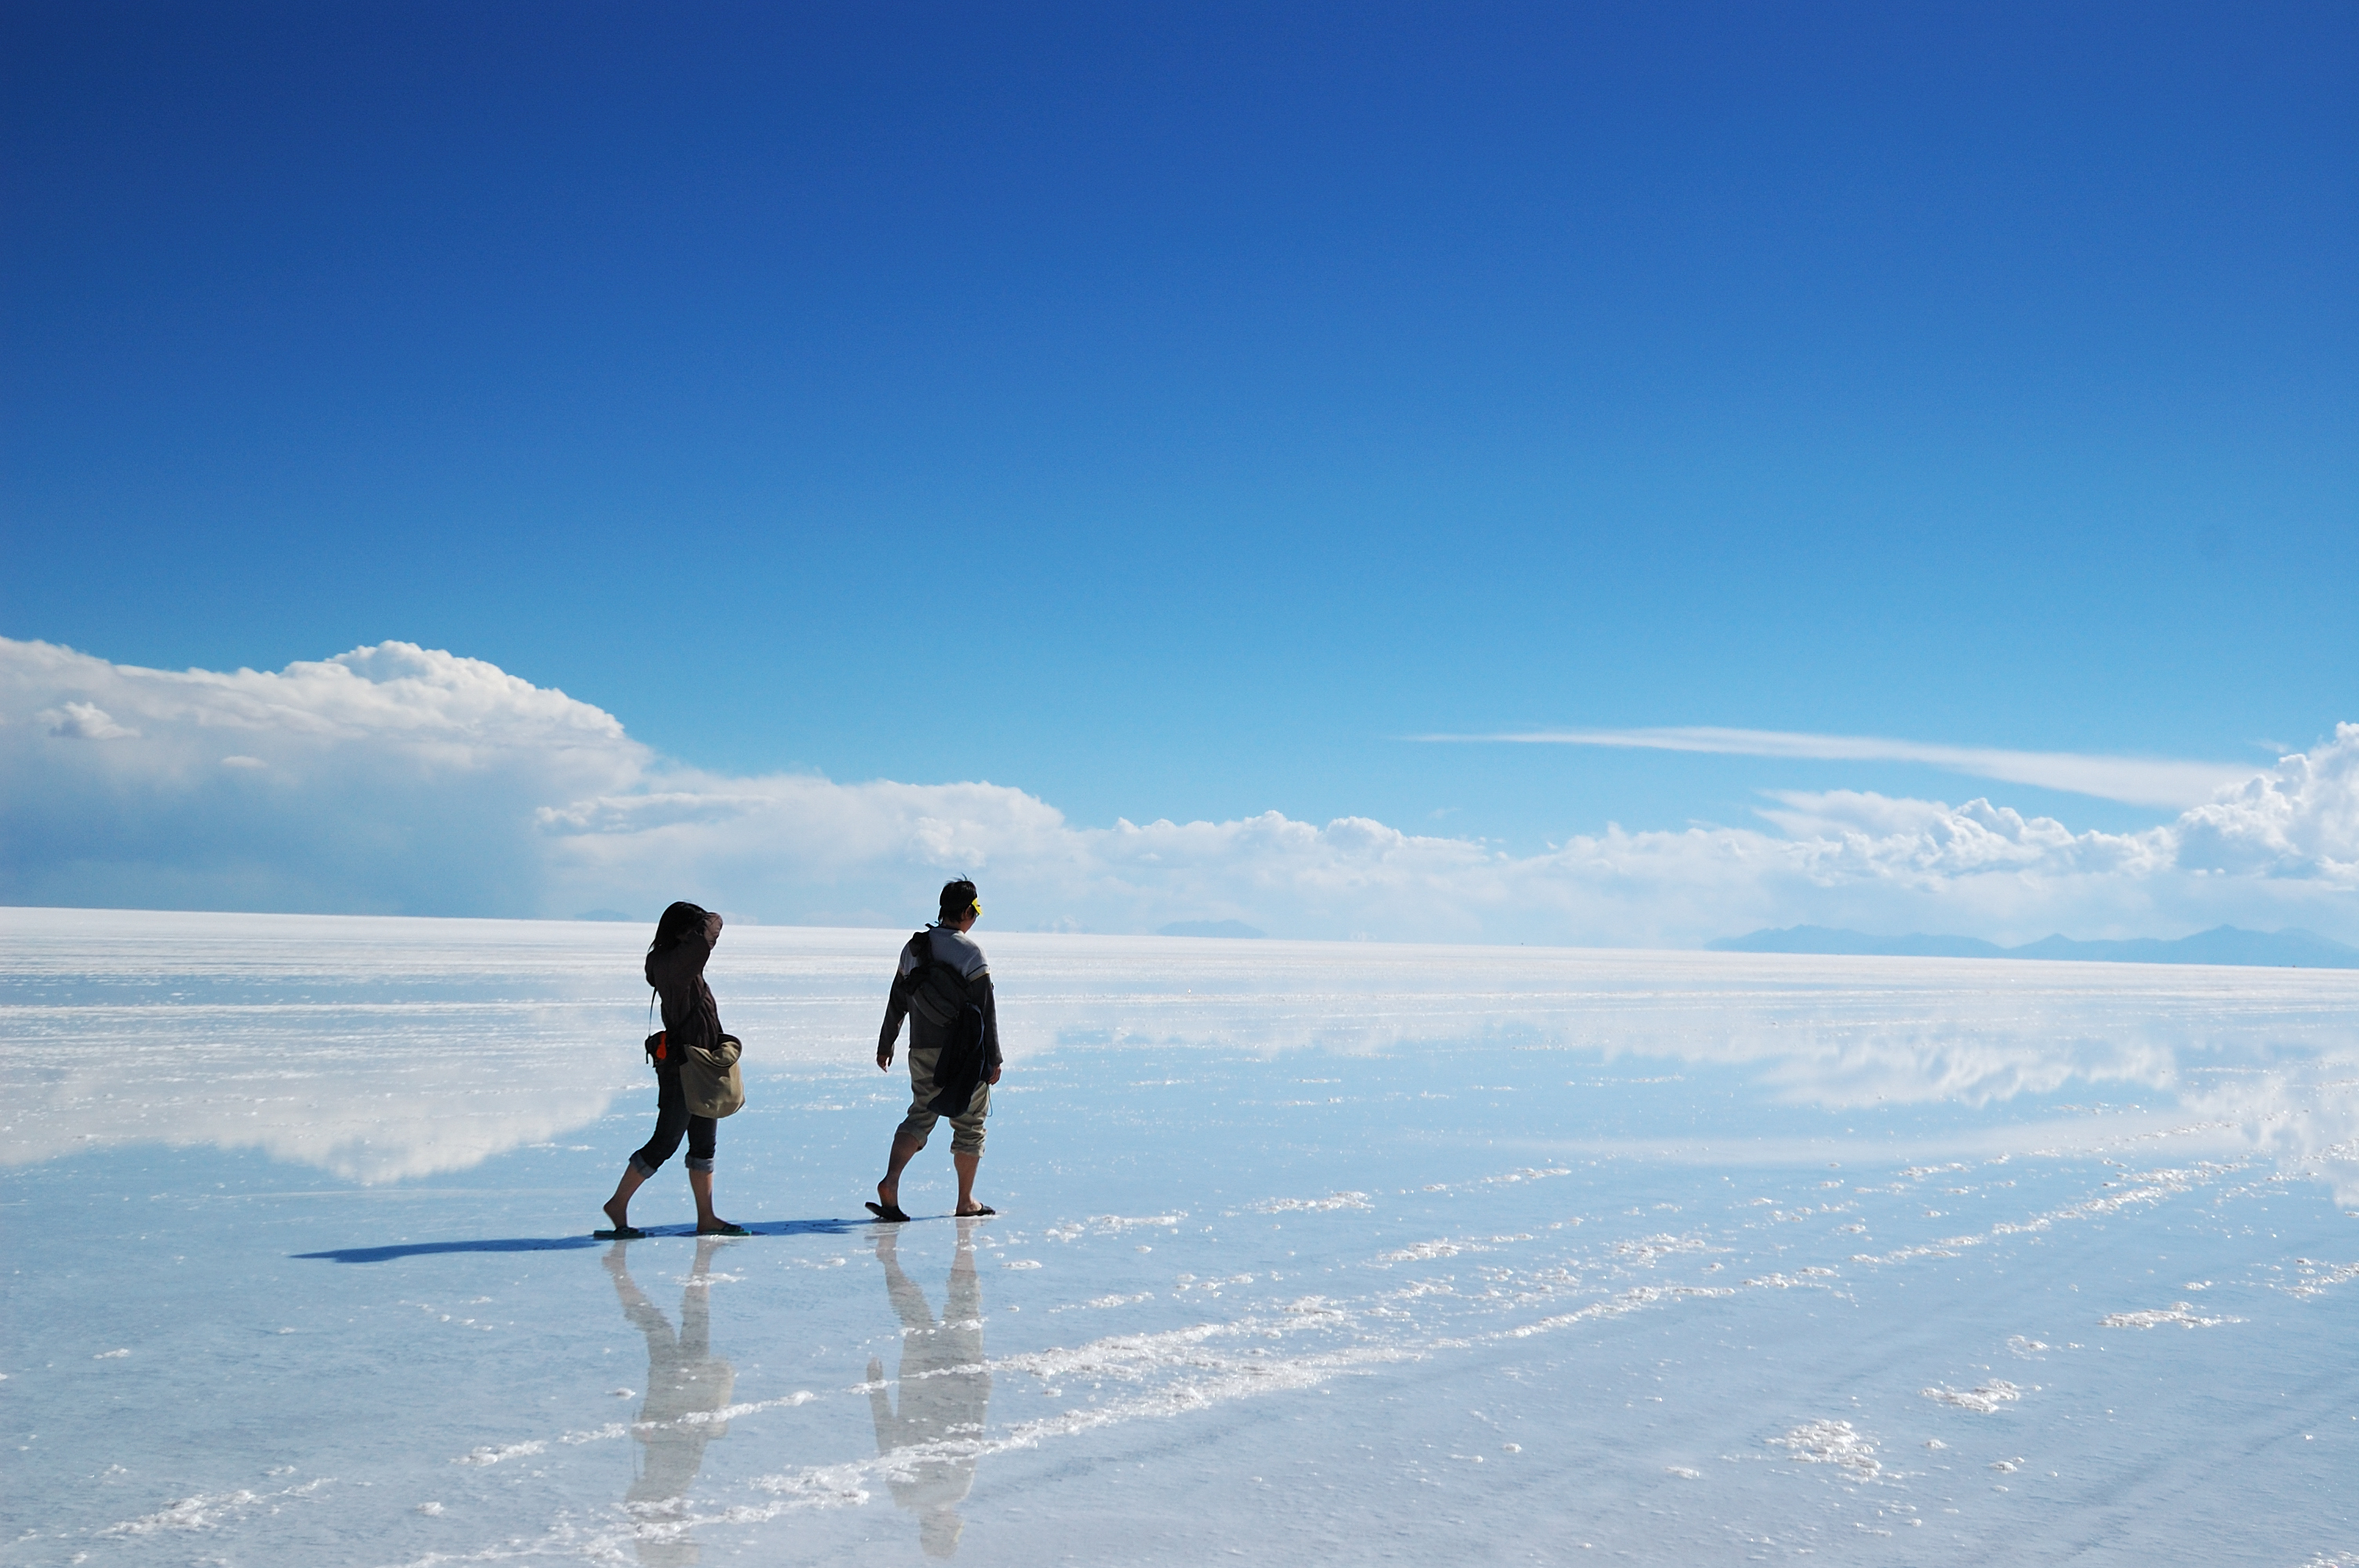 Two people walking on the salt flats in Bolivia in South America